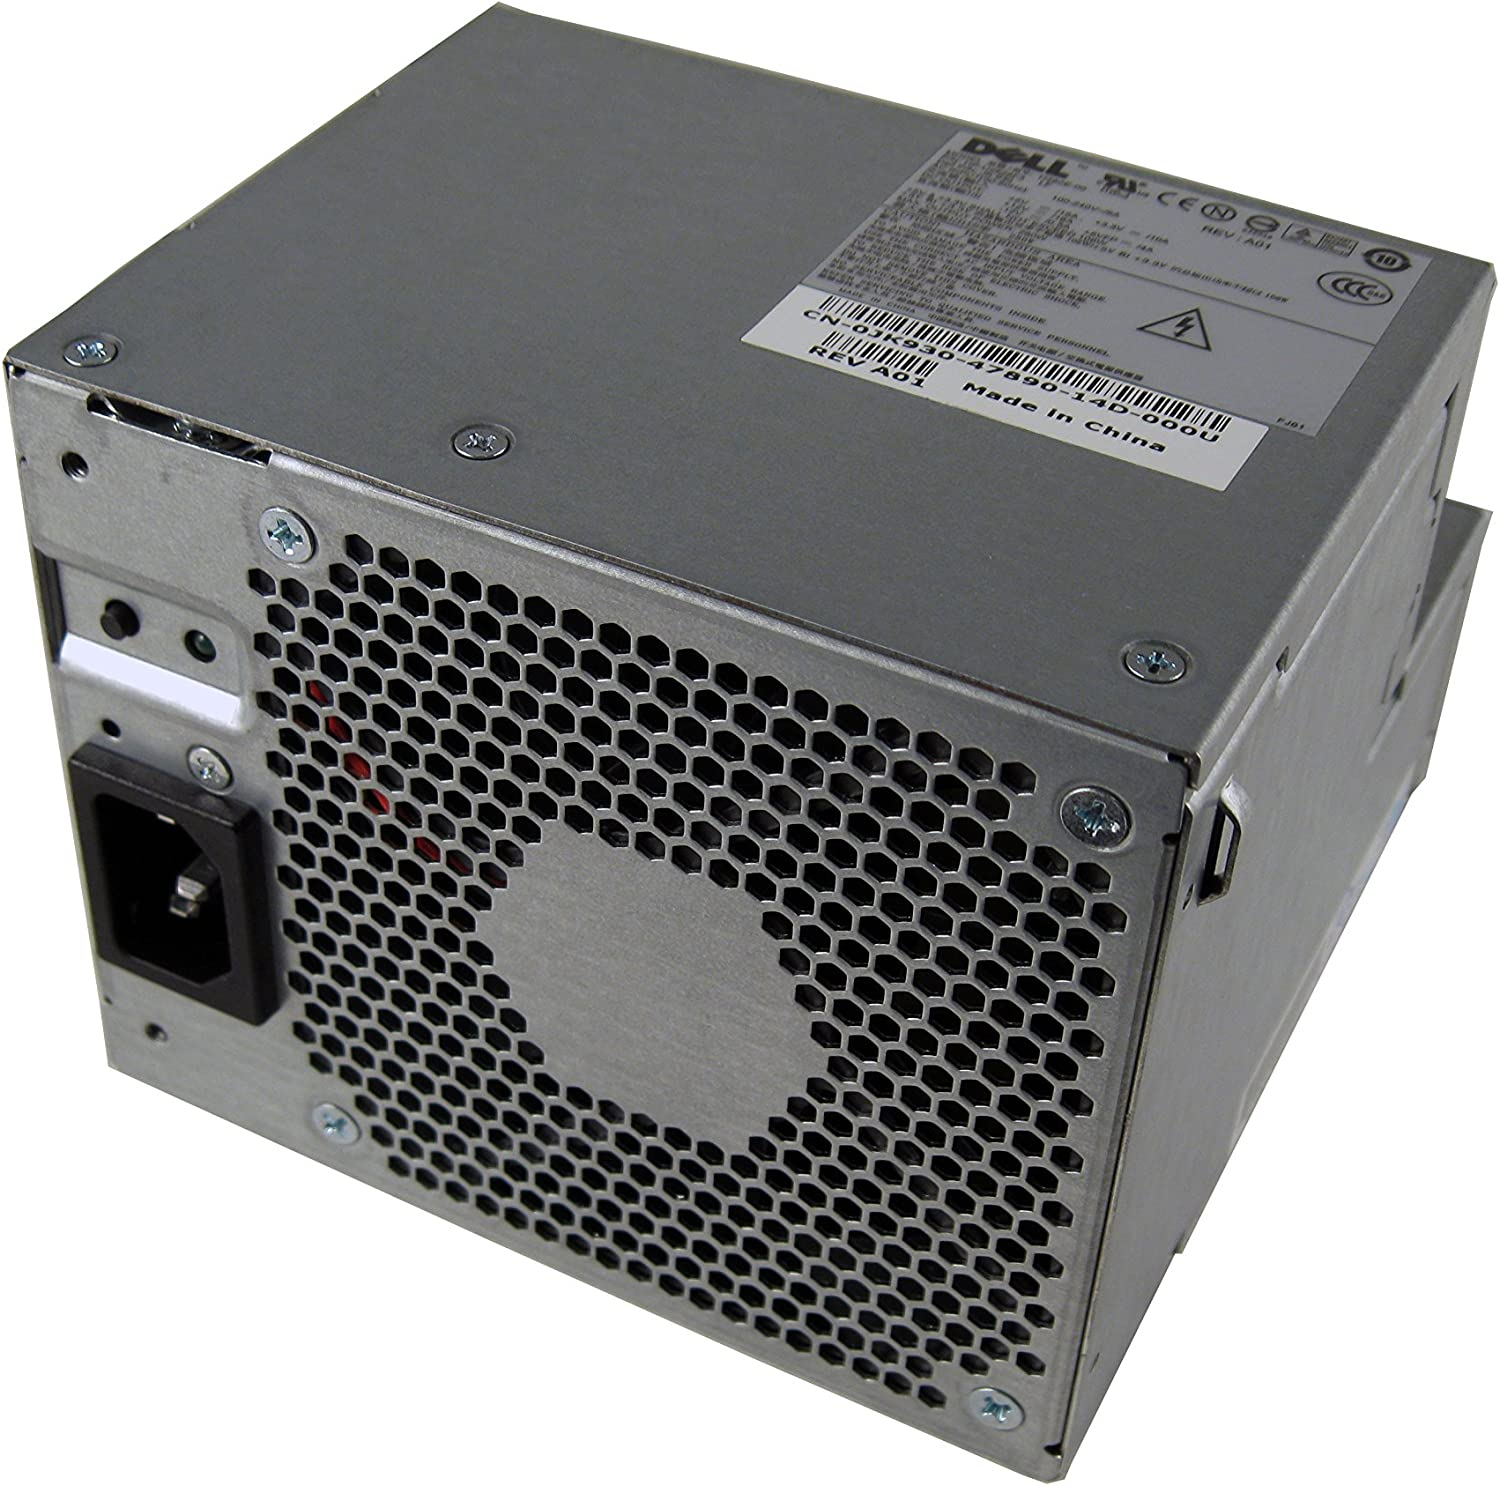 Genuine Dell 255w Power Supply (PSU), Replacement PSU For The Following Desktop (DT) Systems: Dimension 3100C, C521, Optiplex 320, 330, 360, 740, 745, 755, GX520, GX620, 210L, Replaces The Following Dell Part Numbers: KC672, K8965, M8801, M8803, MC638, NC912, N8374, MH595, MH596, NH429, P9550, RT490, U9087, X9072, F5114 MM720, WW109, JK930, Compatible Model Numbers: H220P-00, L220P-00, N220P-00, L280P-00, D280P-00, H280P-00, AA24100L